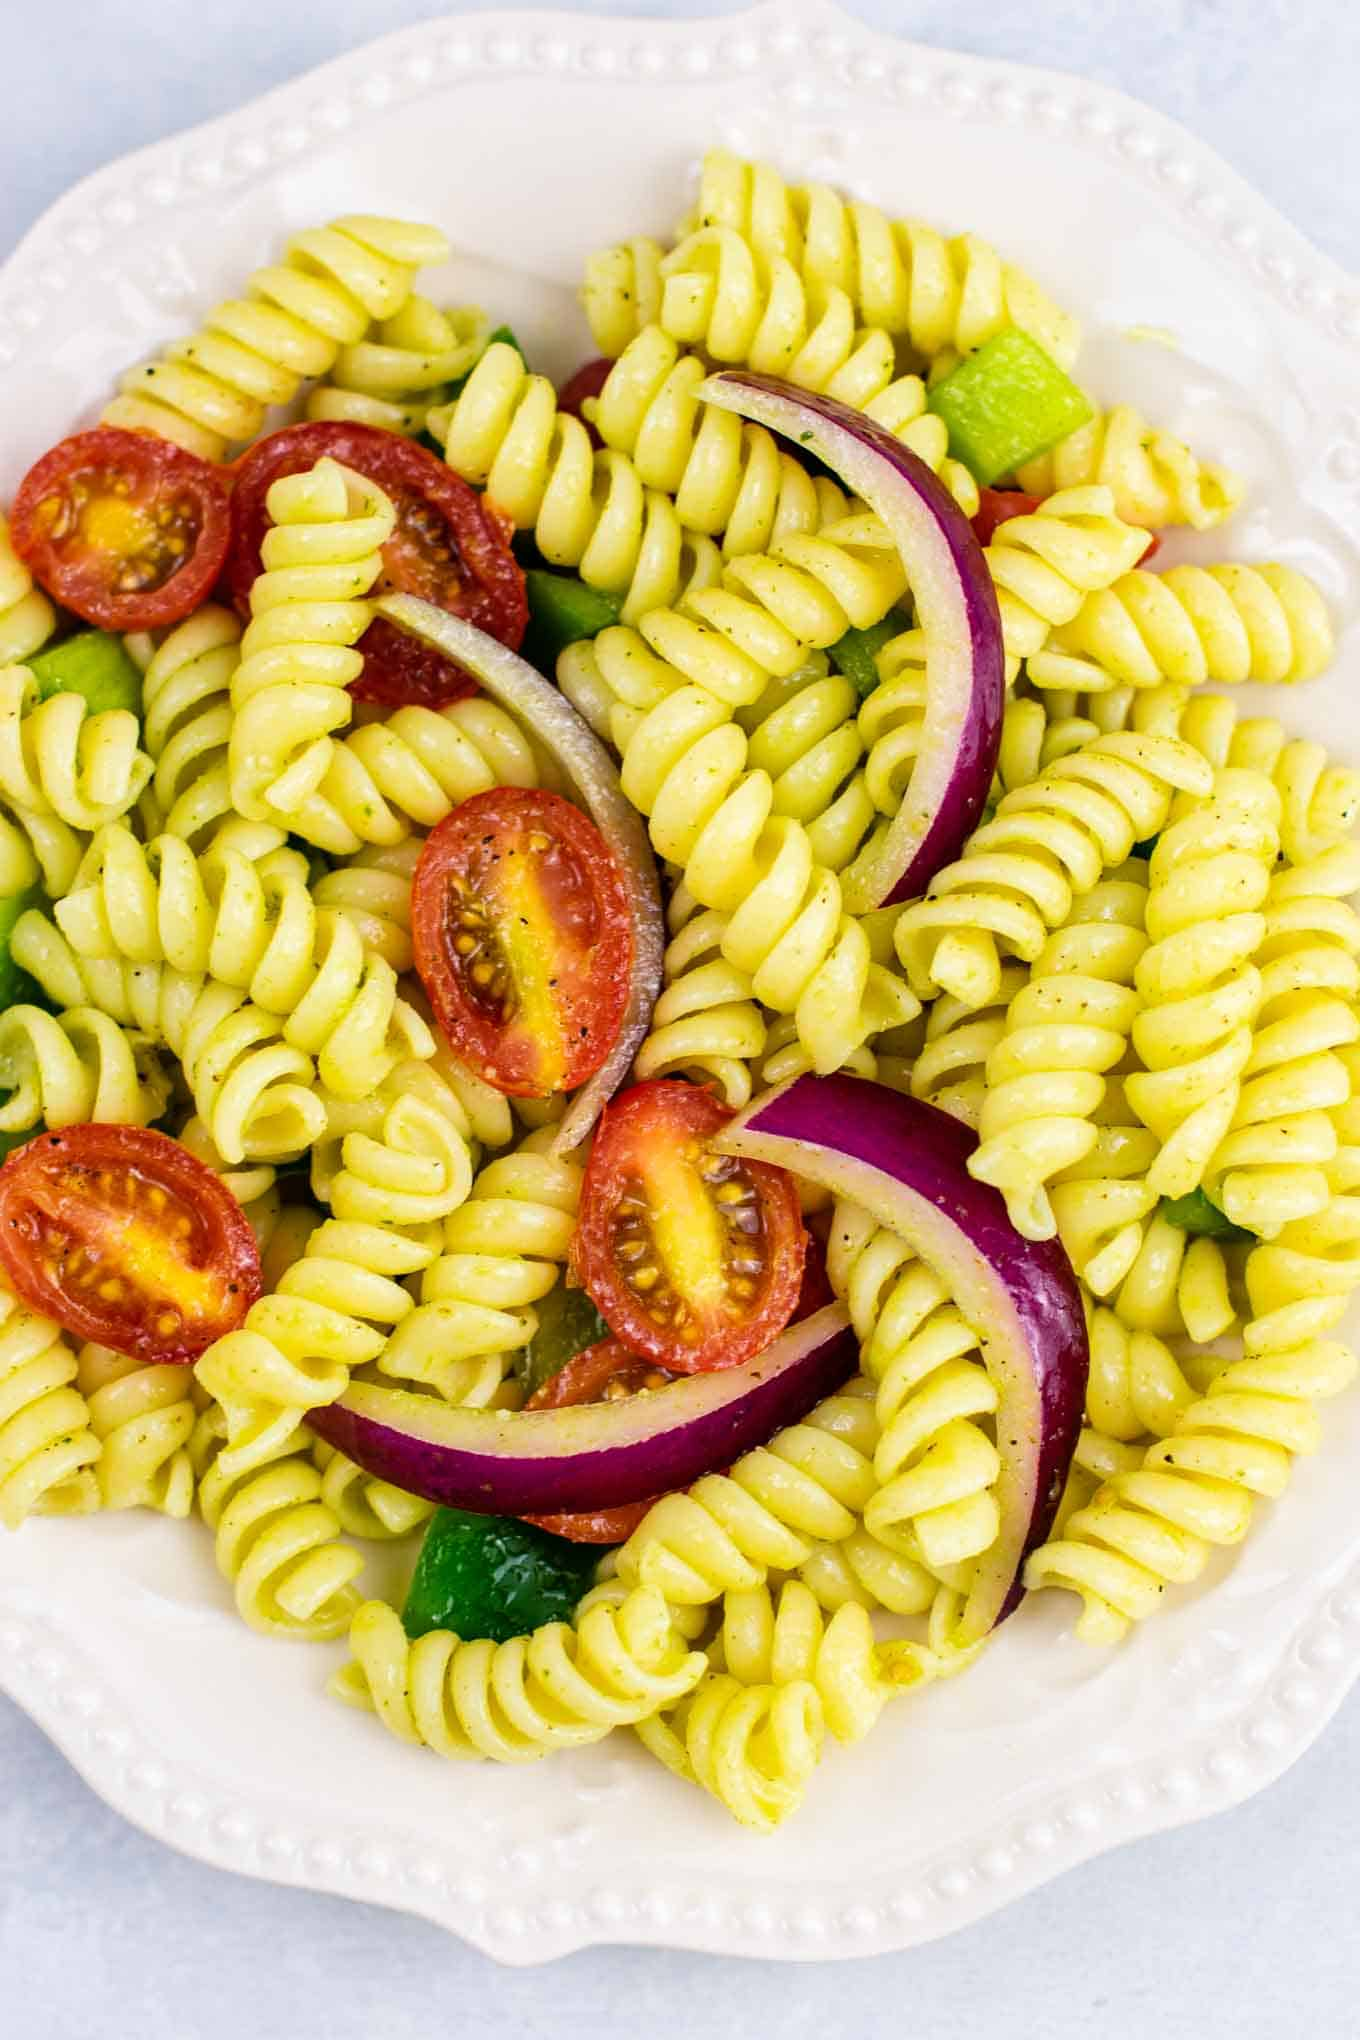 Vegan pasta salad recipes – this was AMAZING! So much flavor and really easy to make. #vegan #pastasalad #vegetarian #sidedish #summer #meatless #dairyfree #healthyrecipe #veganpastasalad